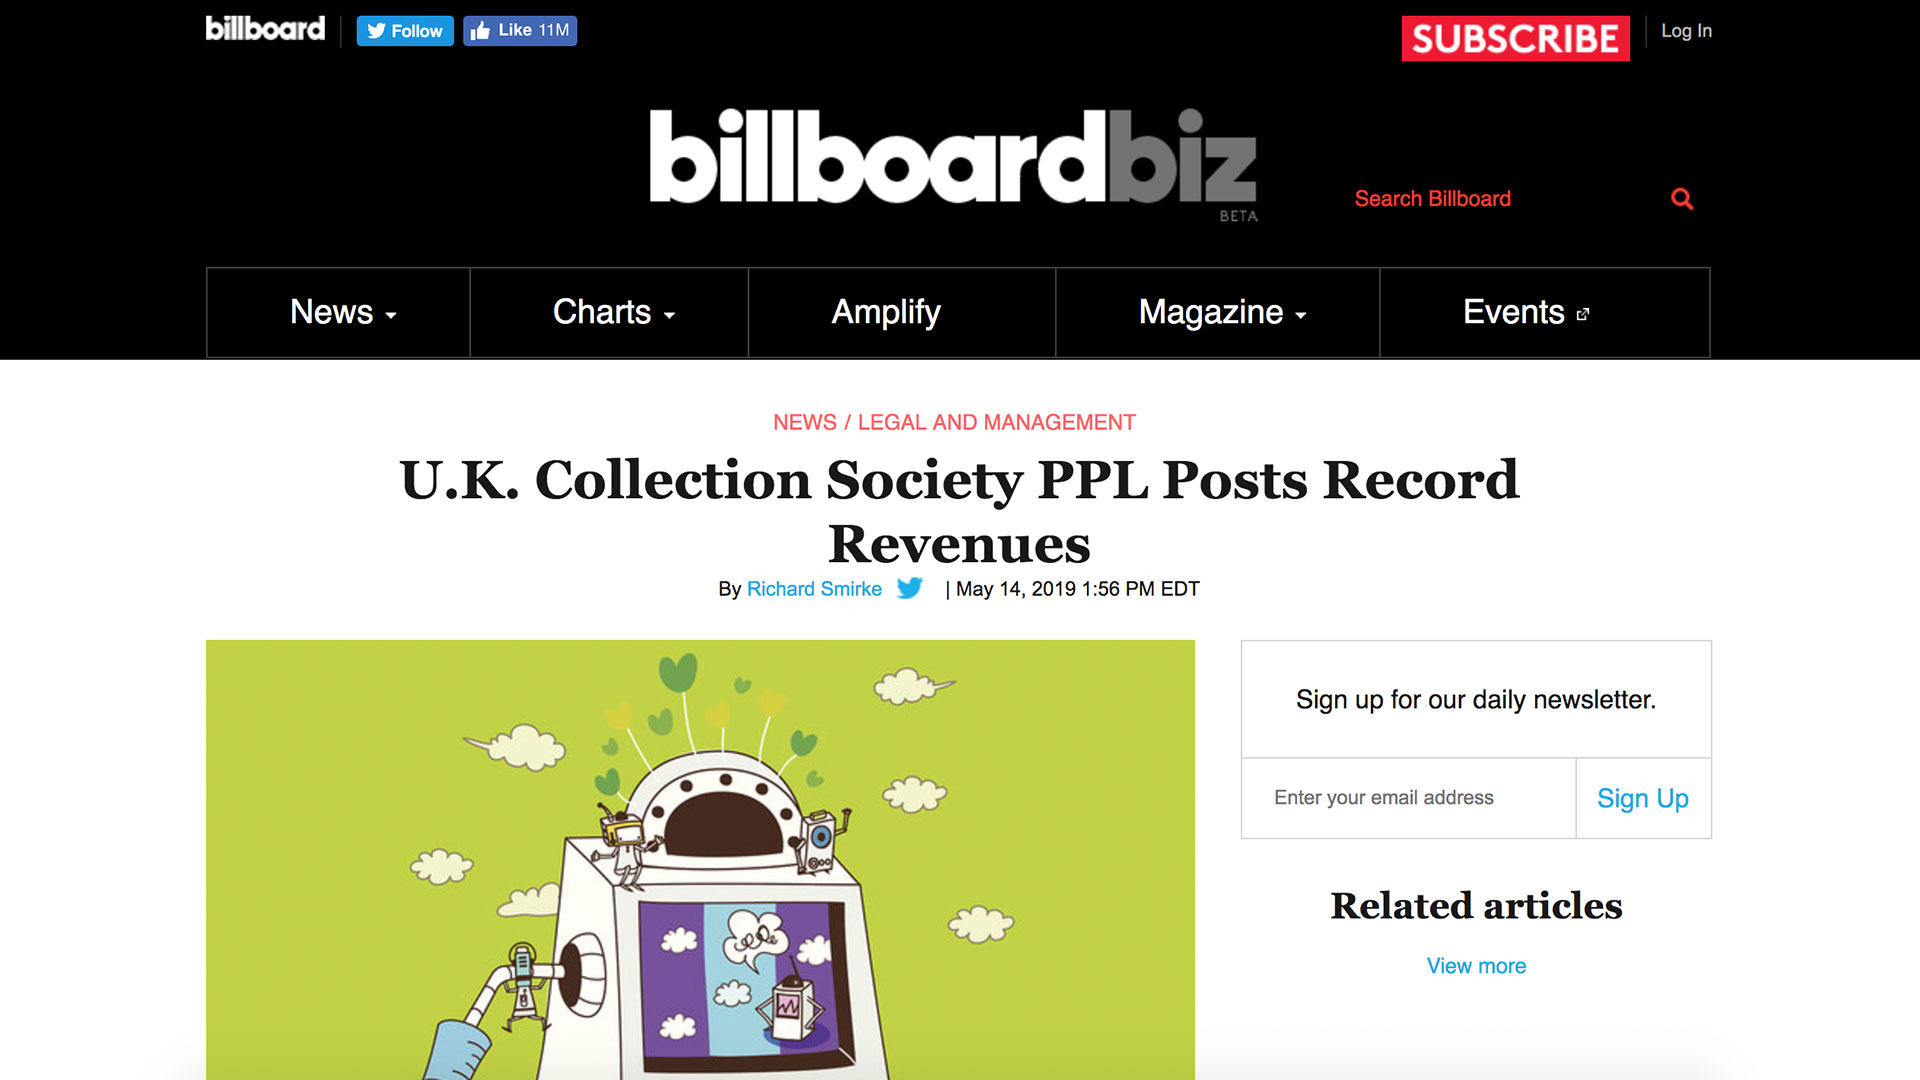 Fairness Rocks News U.K. Collection Society PPL Posts Record Revenues